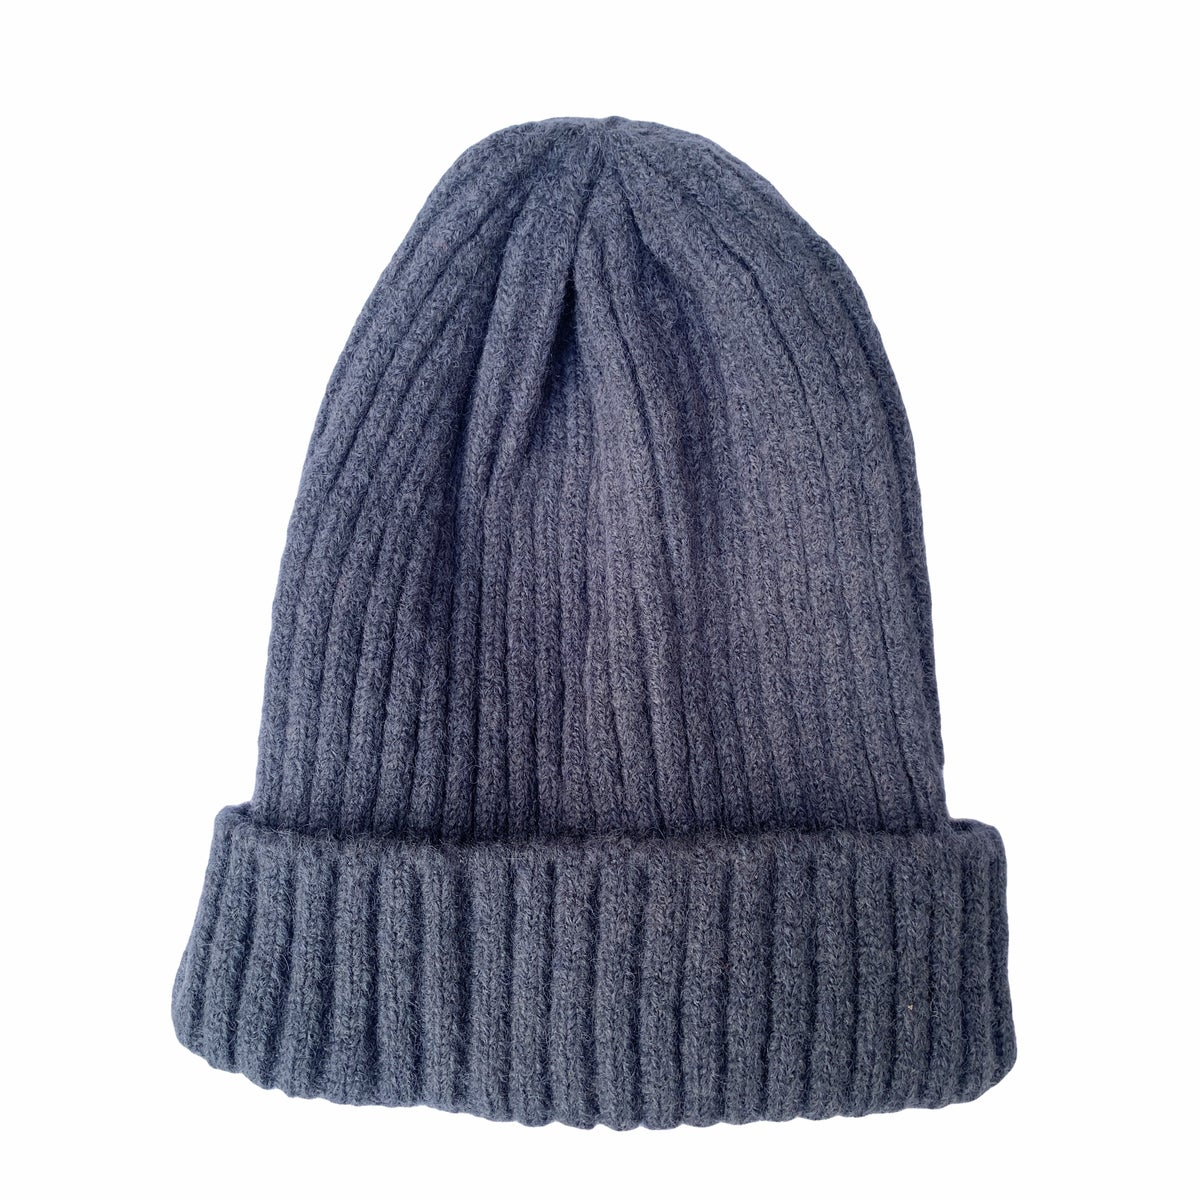 Image of Soft fisherman's style beanie/ watch cap. Smoky Blue